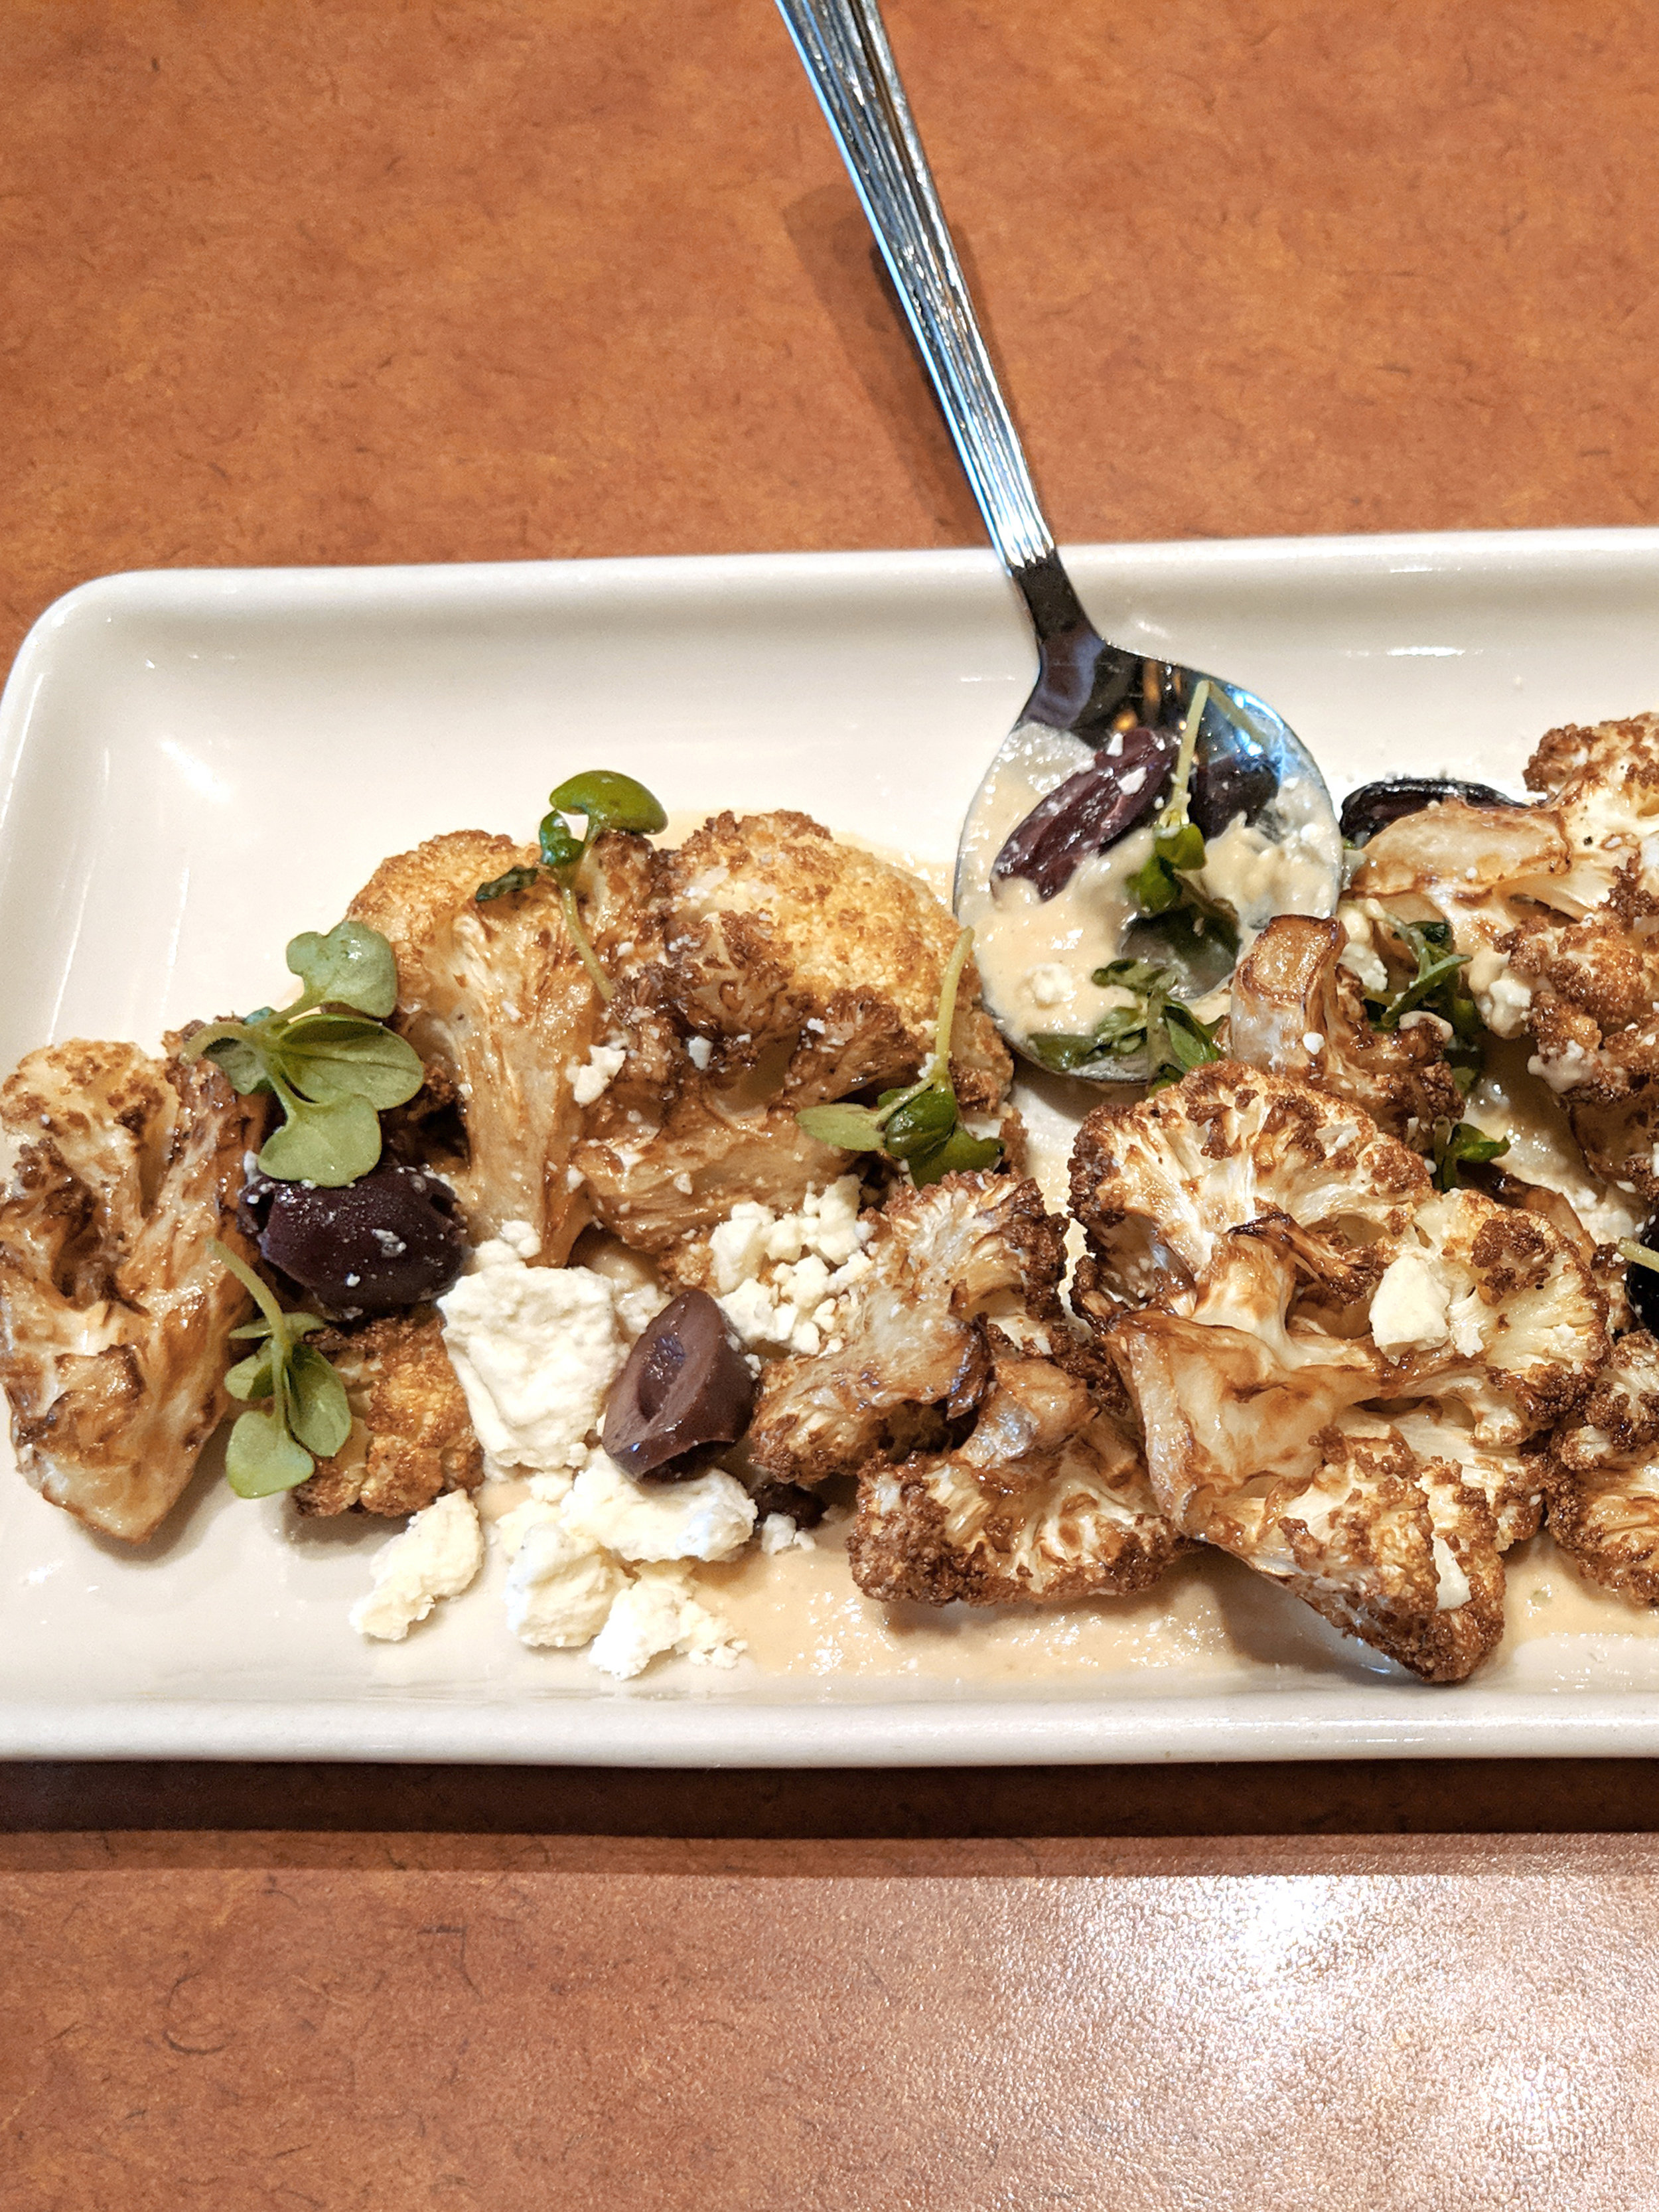 Crispy Cauliflower from Nordstom's on a long white plate with olives and tahini sauce.